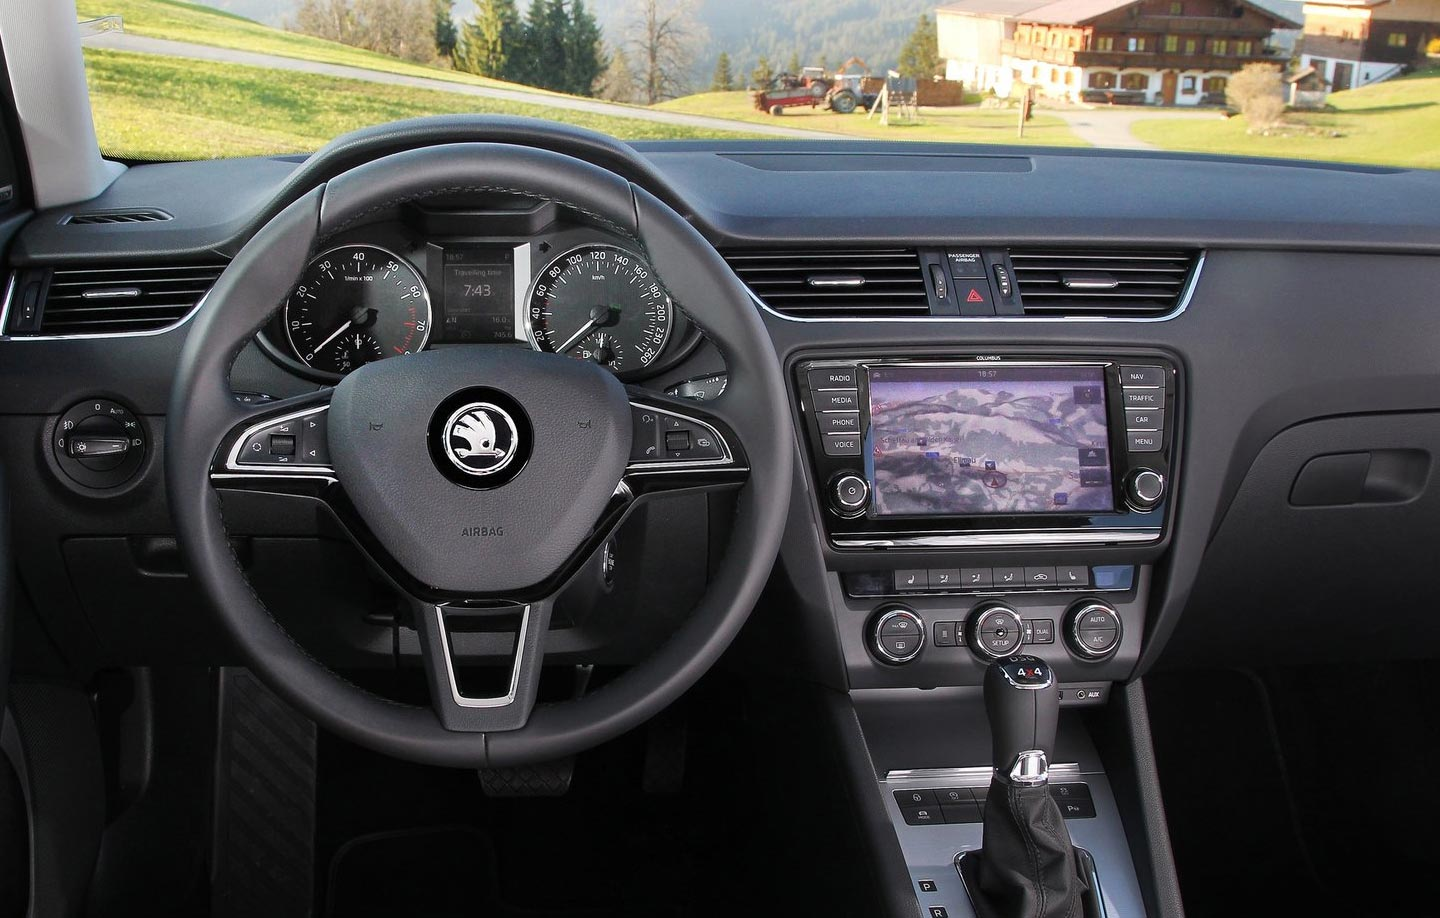 skoda octavia interior 2, bestcar corfu car rental